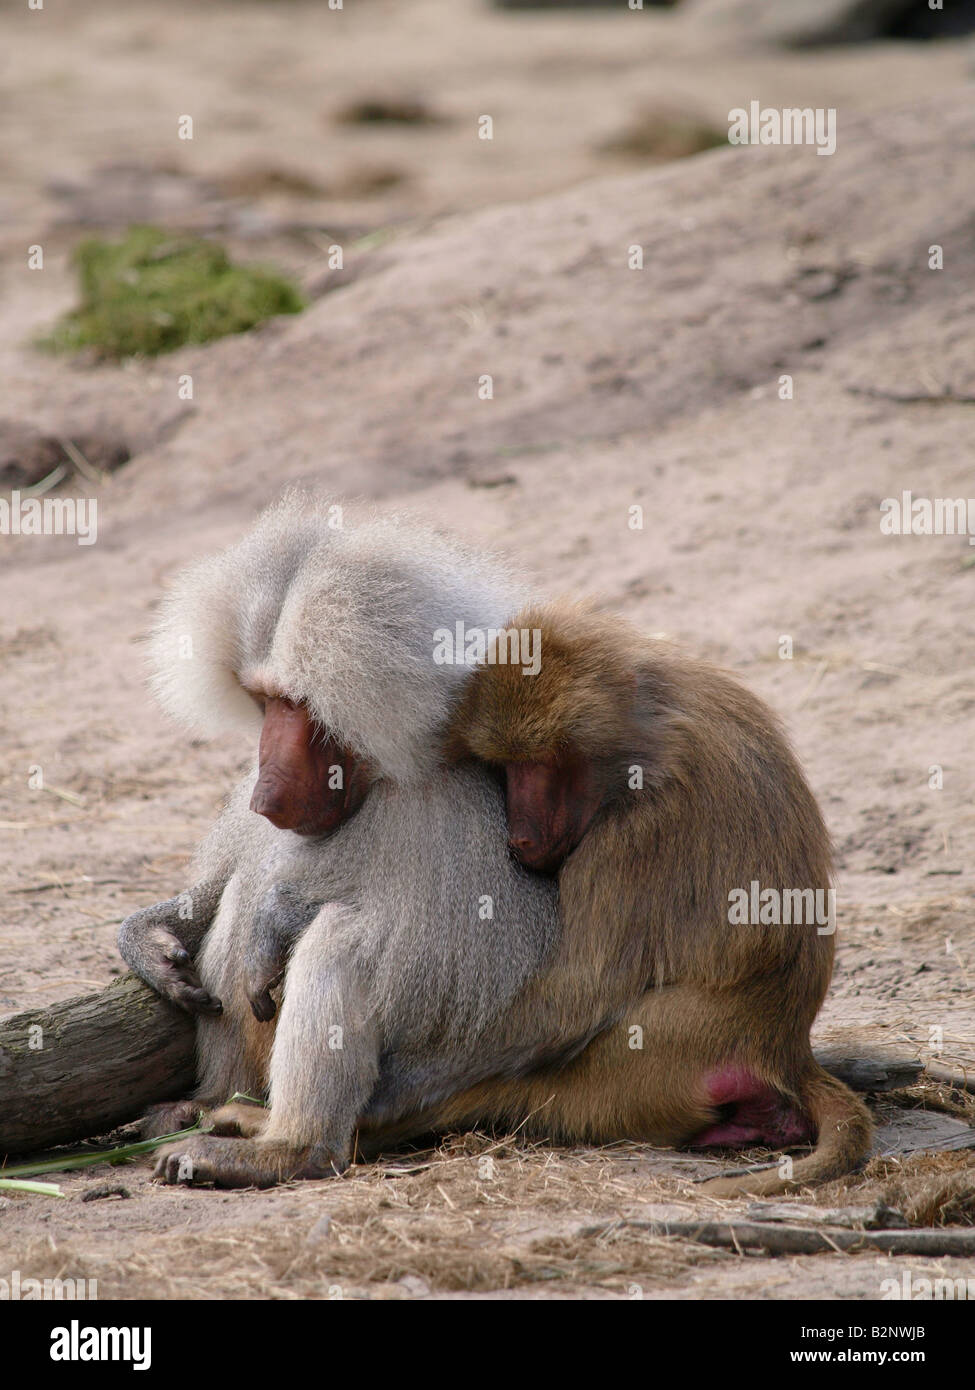 Cute baboon couple holding each other tight Beekse Bergen zoo Hilvarenbeek the Netherlands - Stock Image